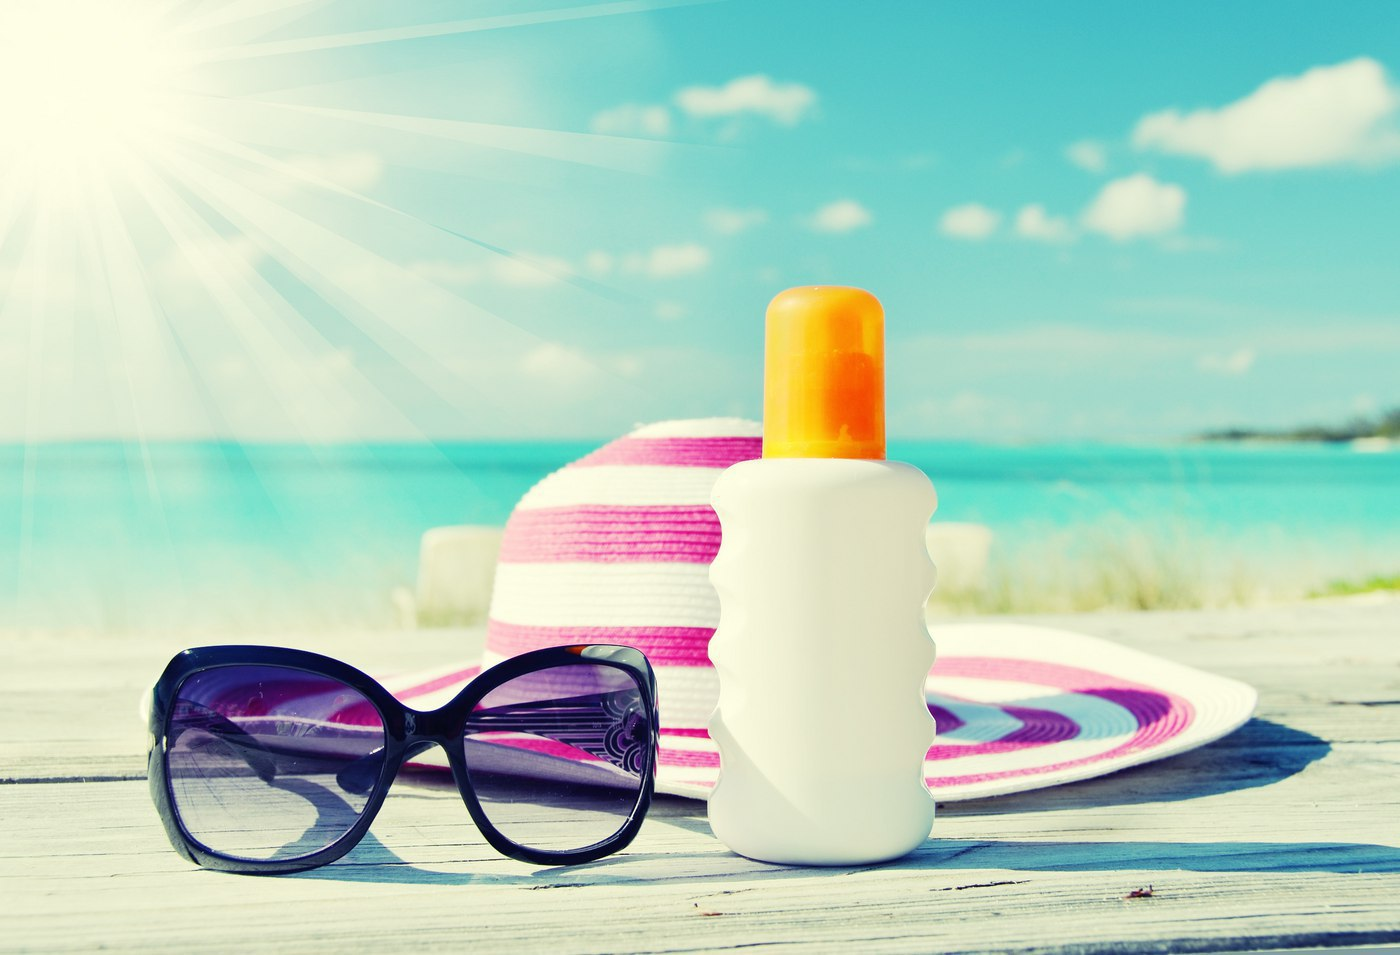 Fight Harmful UV Rays With Safer Sunscreens - Protect Your Health & The Environment